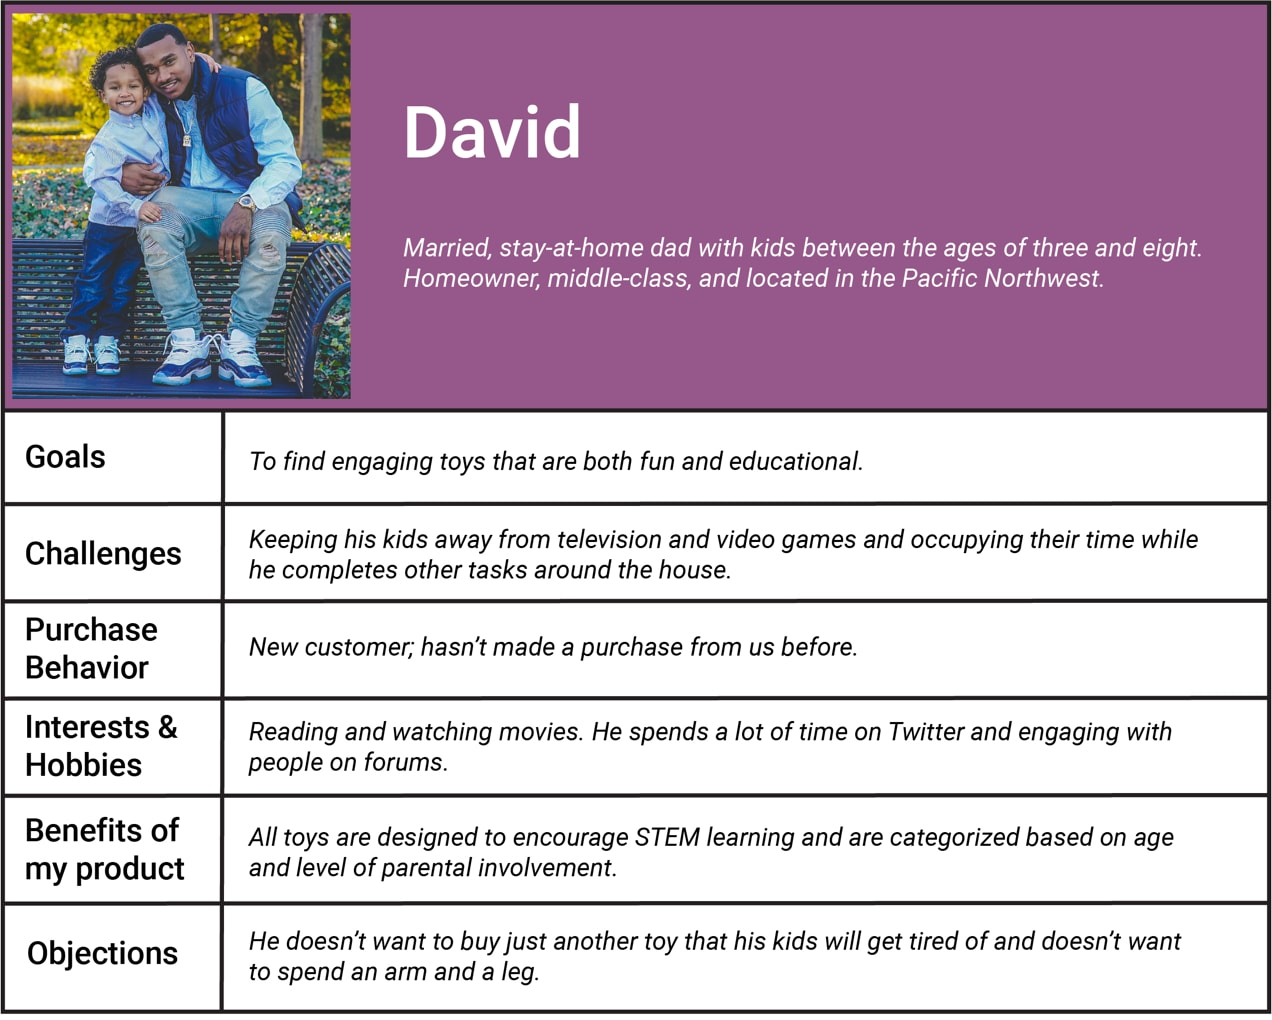 buyer persona for David, with goals, challenges, and more